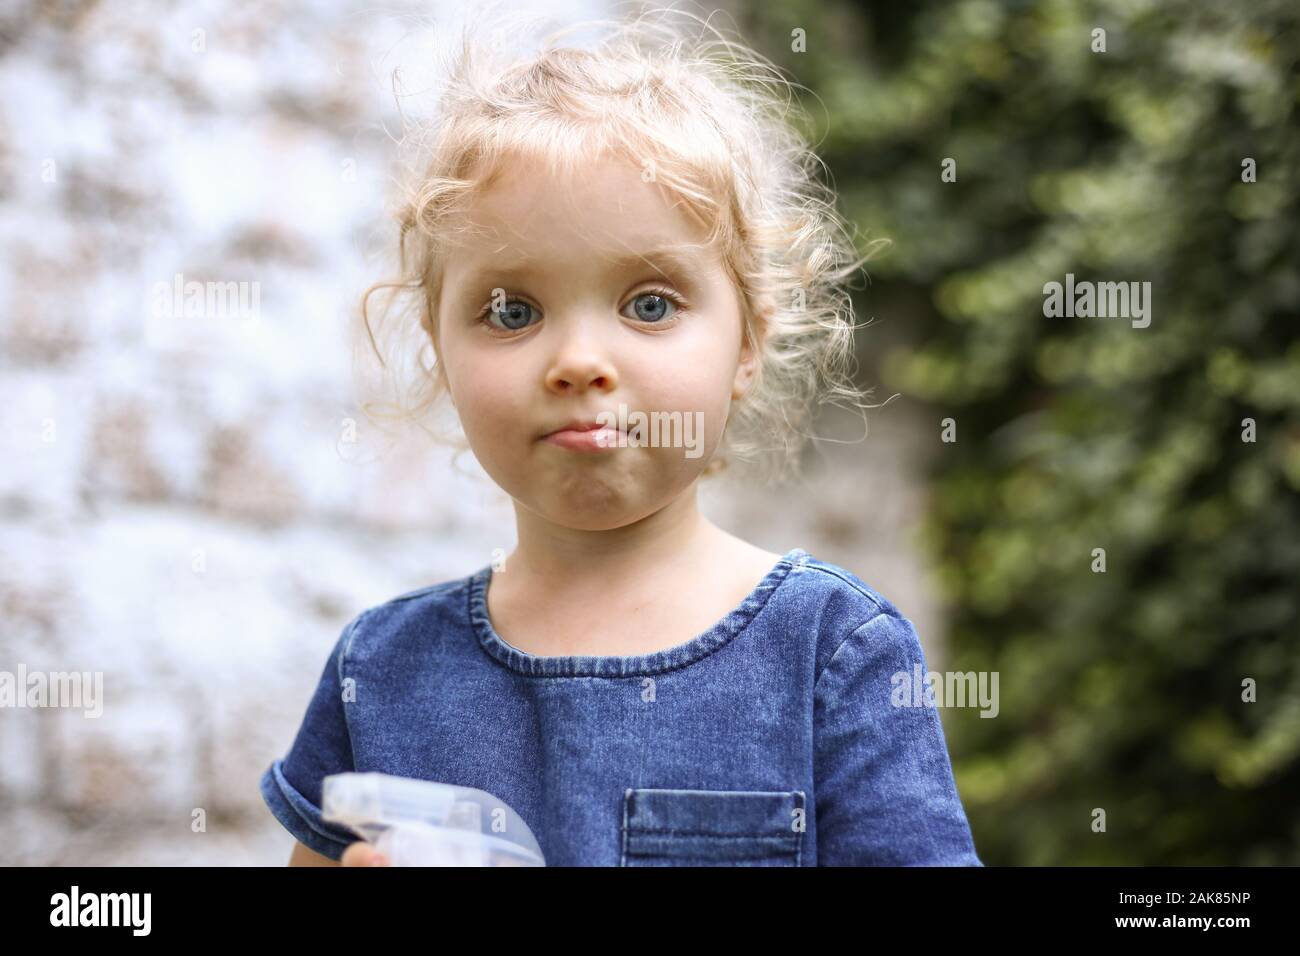 Baby Girl Curly Hair Blue Eyes High Resolution Stock Photography And Images Alamy